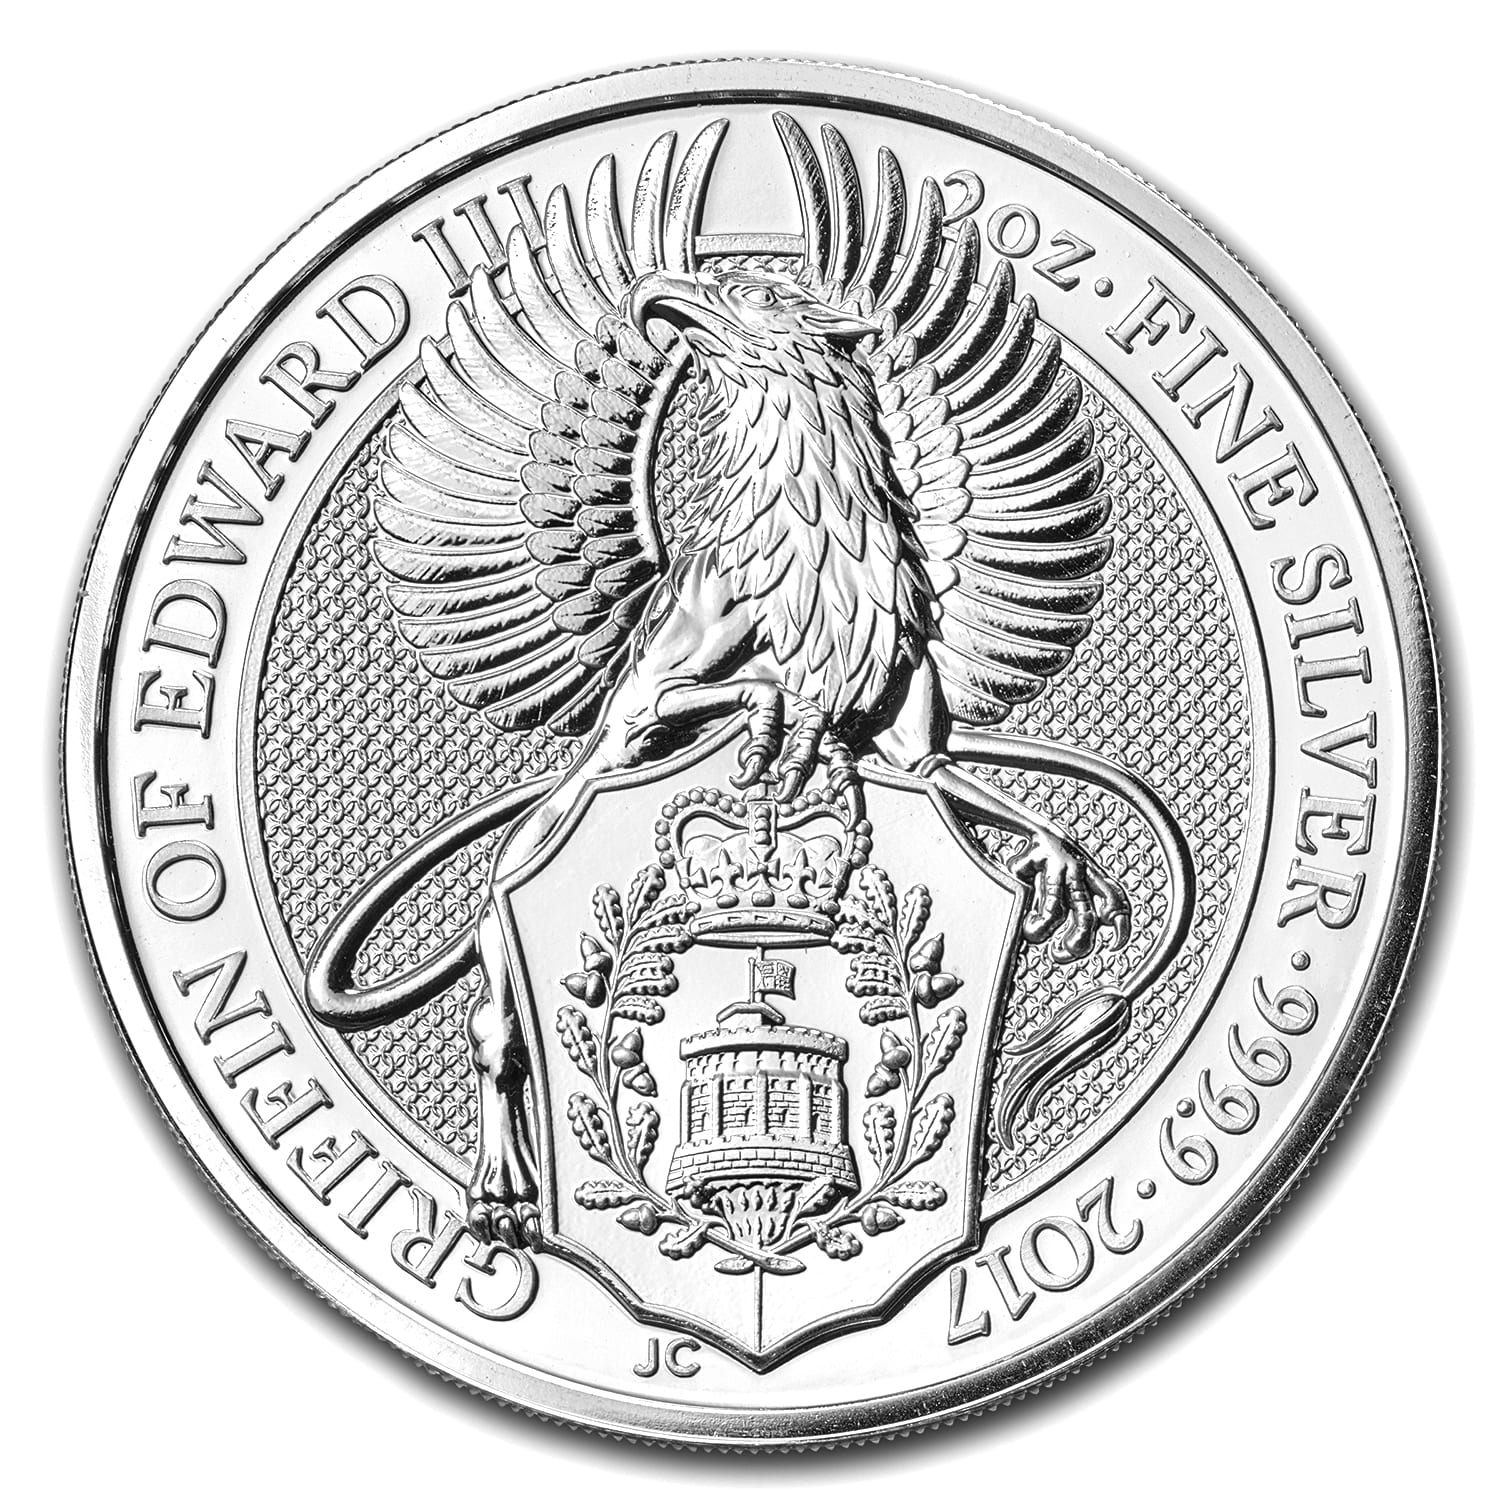 2017 Queen/'s Beast Griffin of Edward III 2 oz Silver UK Coin direct fit capsule